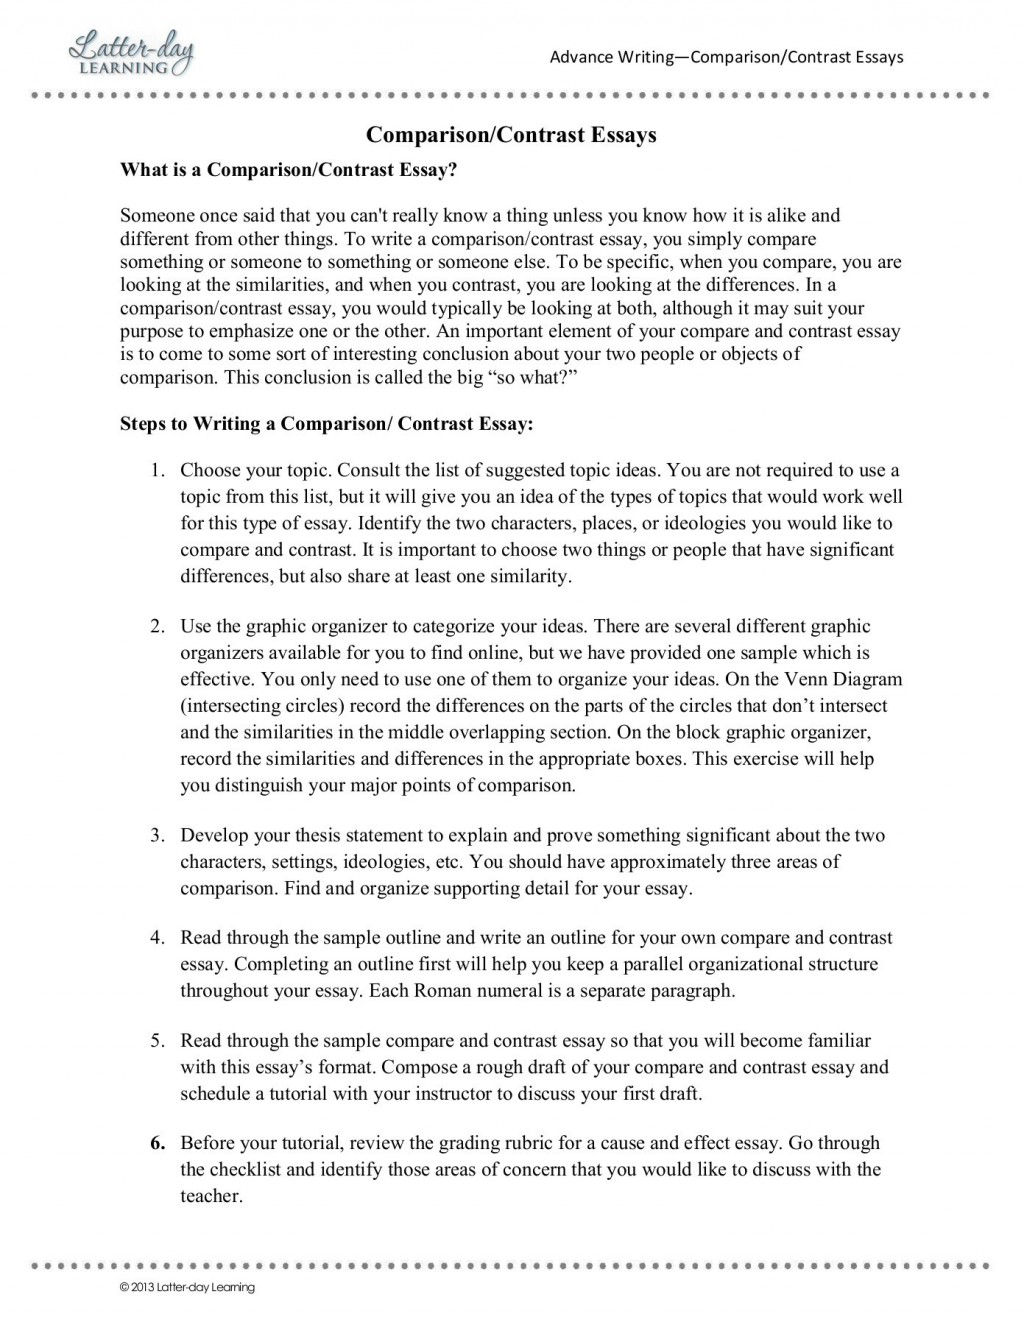 013 Comparison Contrast Essay Example Beautiful Topics Compare And Structure Block Method Pdf Large